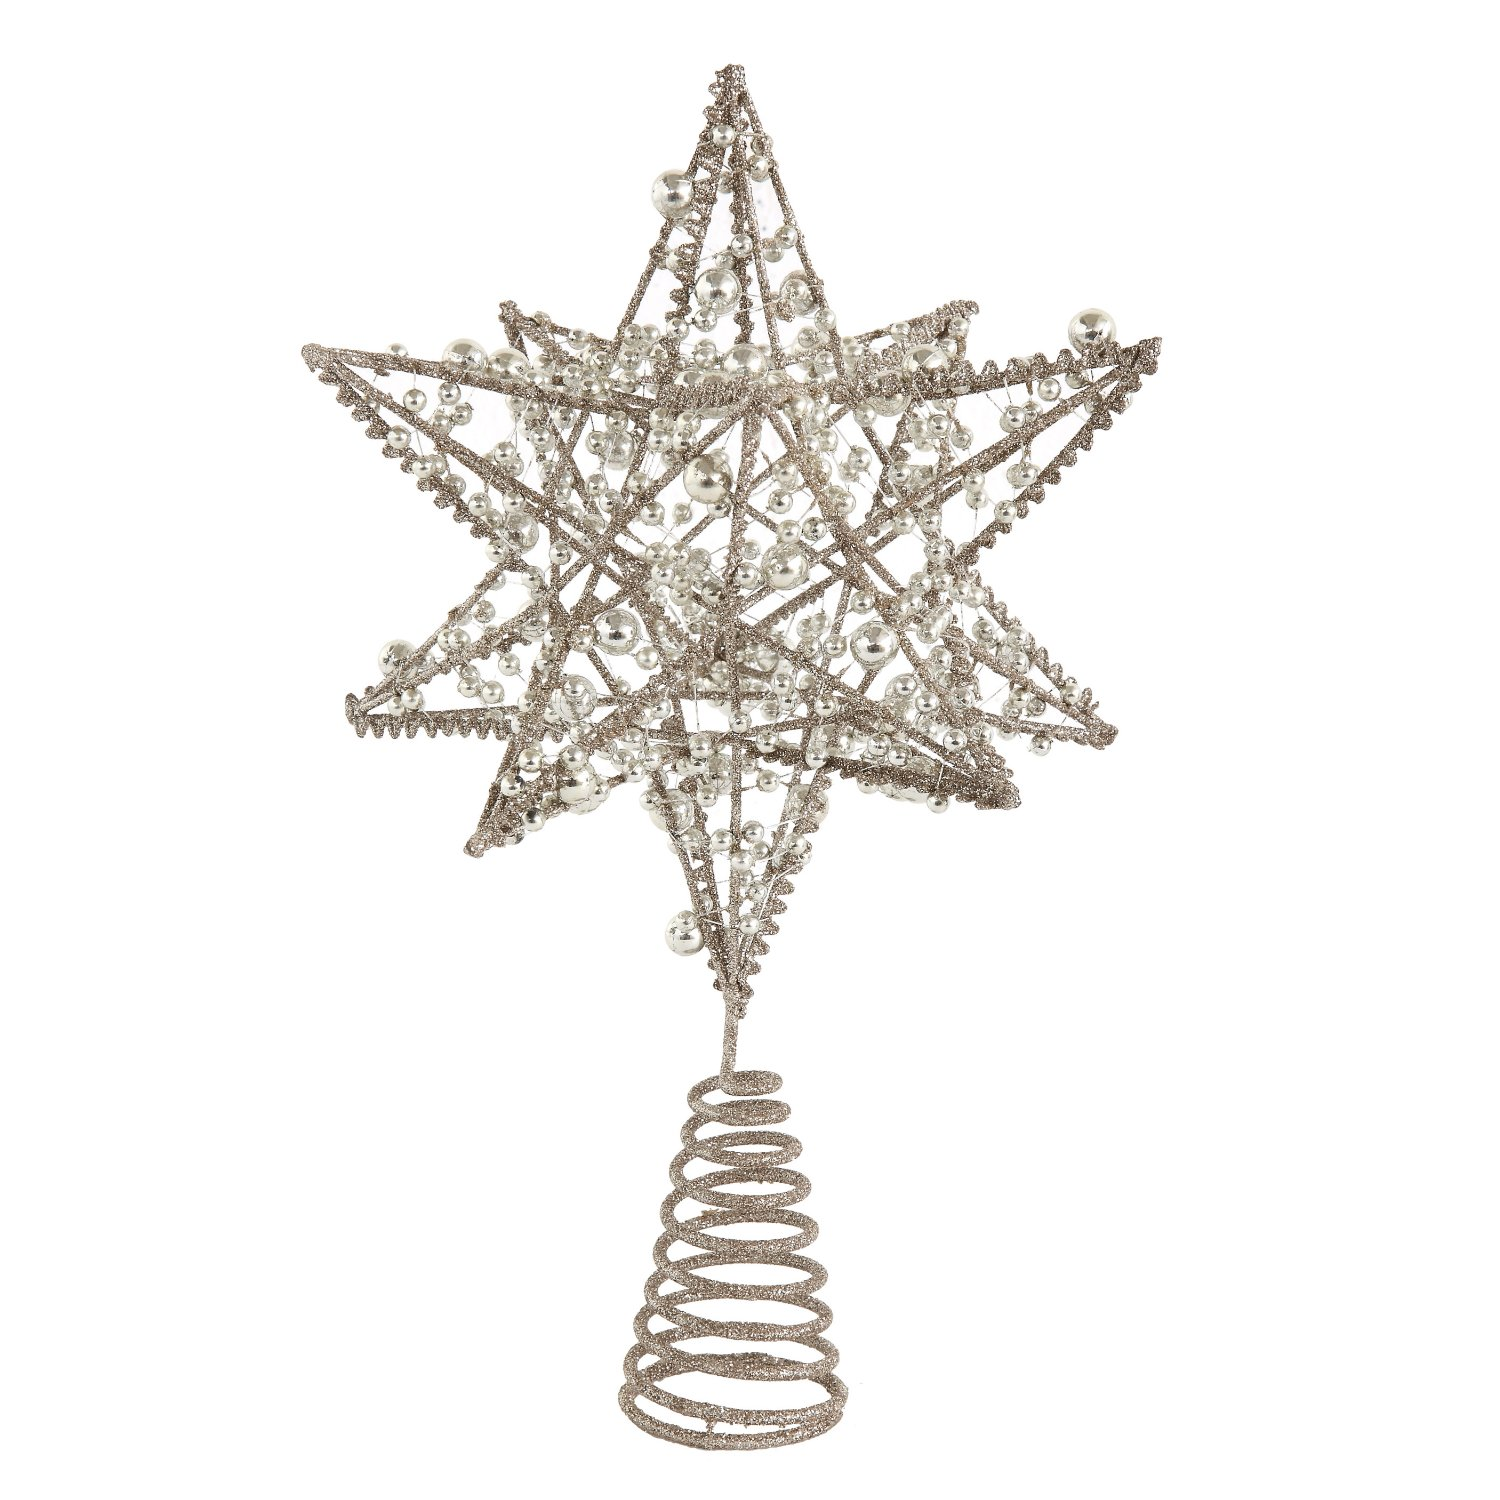 3D Beaded Silver Star Christmas Tree Topper - Tree Ornament Holiday Decoration